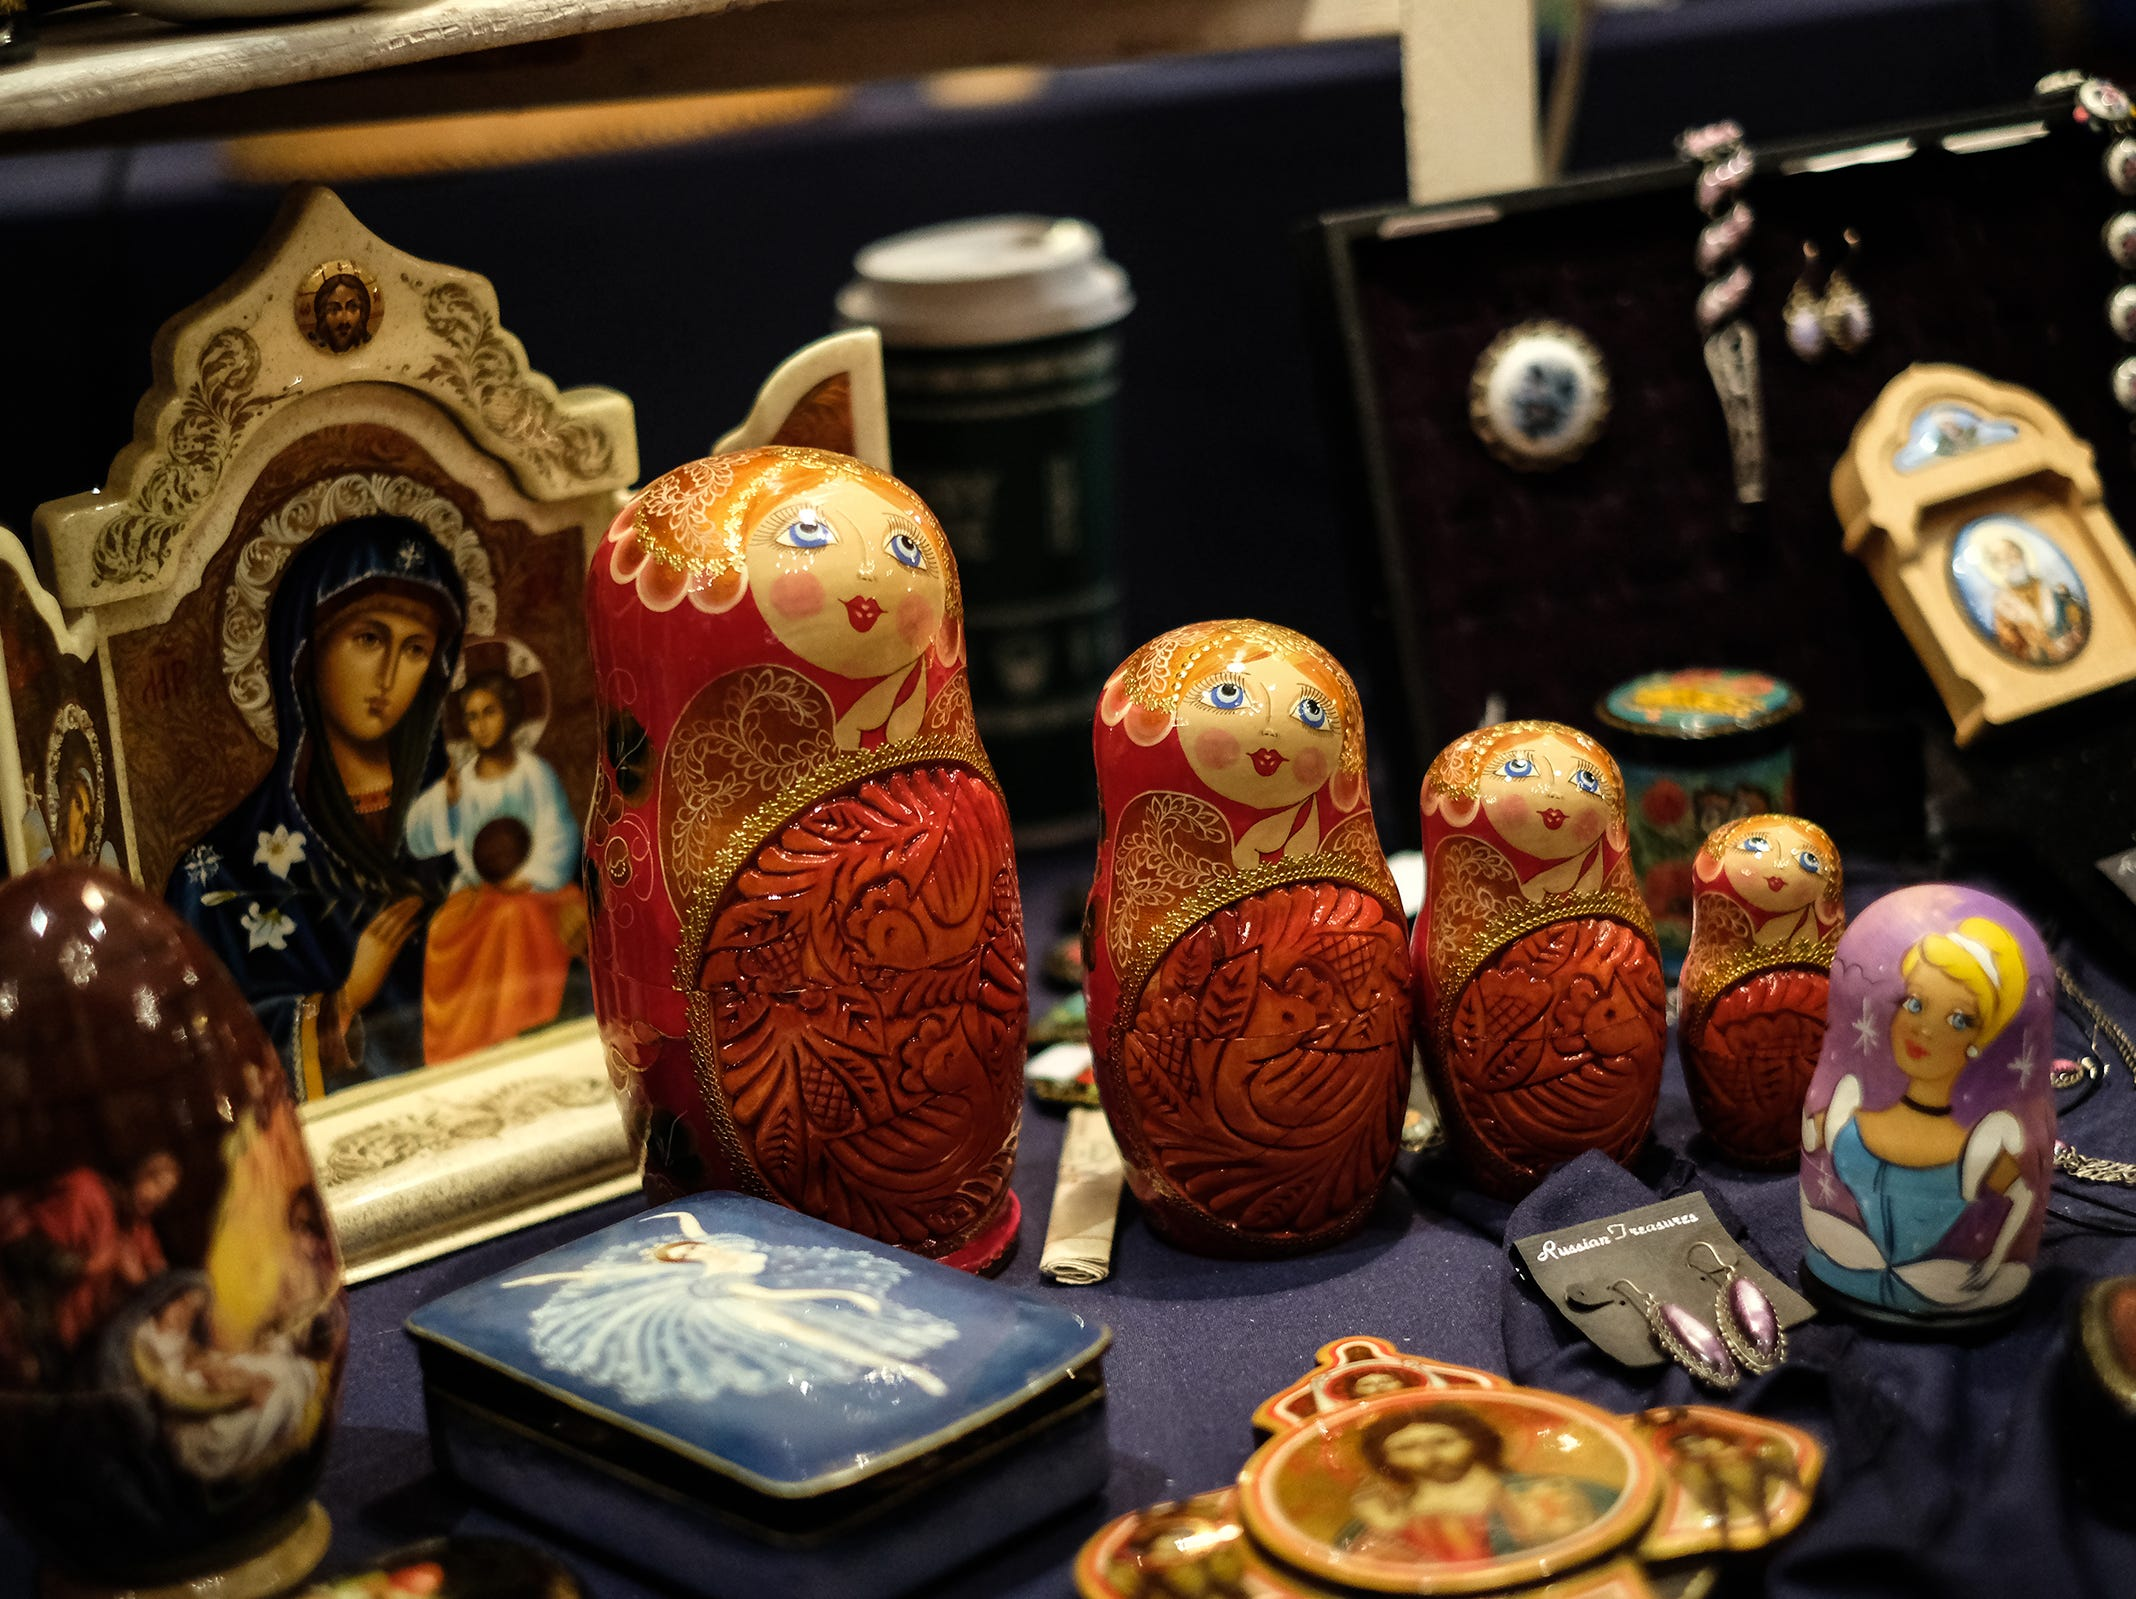 Russian nesting dolls and other pieces representing 60 artists by Ludmila's Russian Treasures are on display at the MSU Winter Arts & Craft Show Sunday, Dec. 2, 2018.